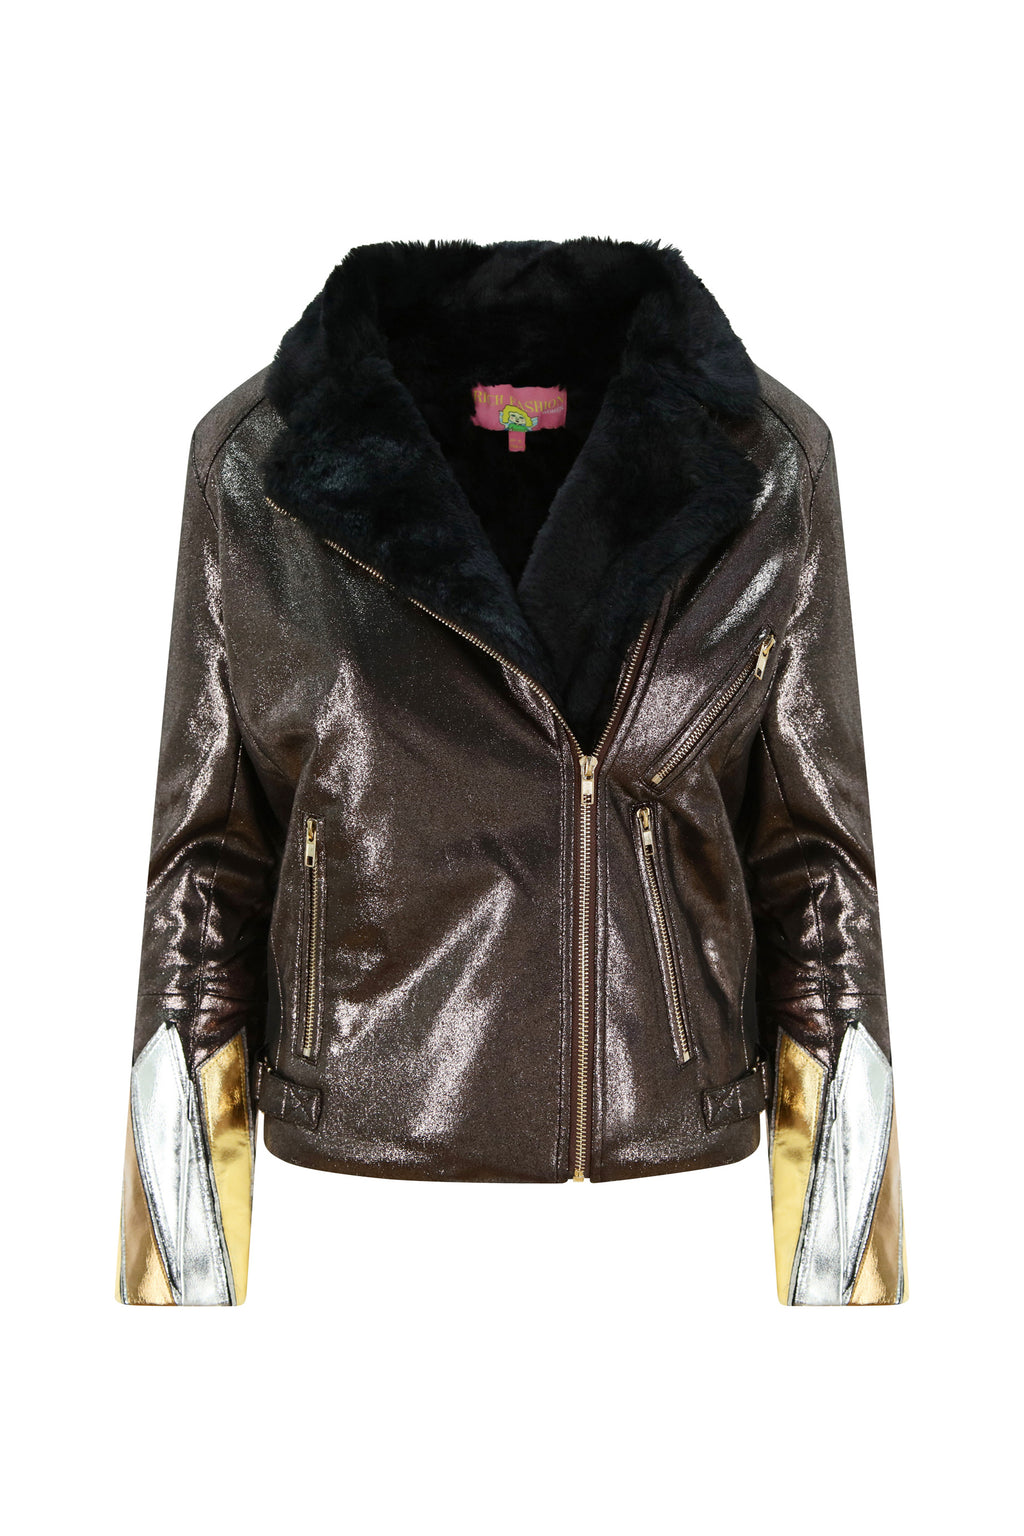 Metallic Bronze Faux Leather and Fur Jacket